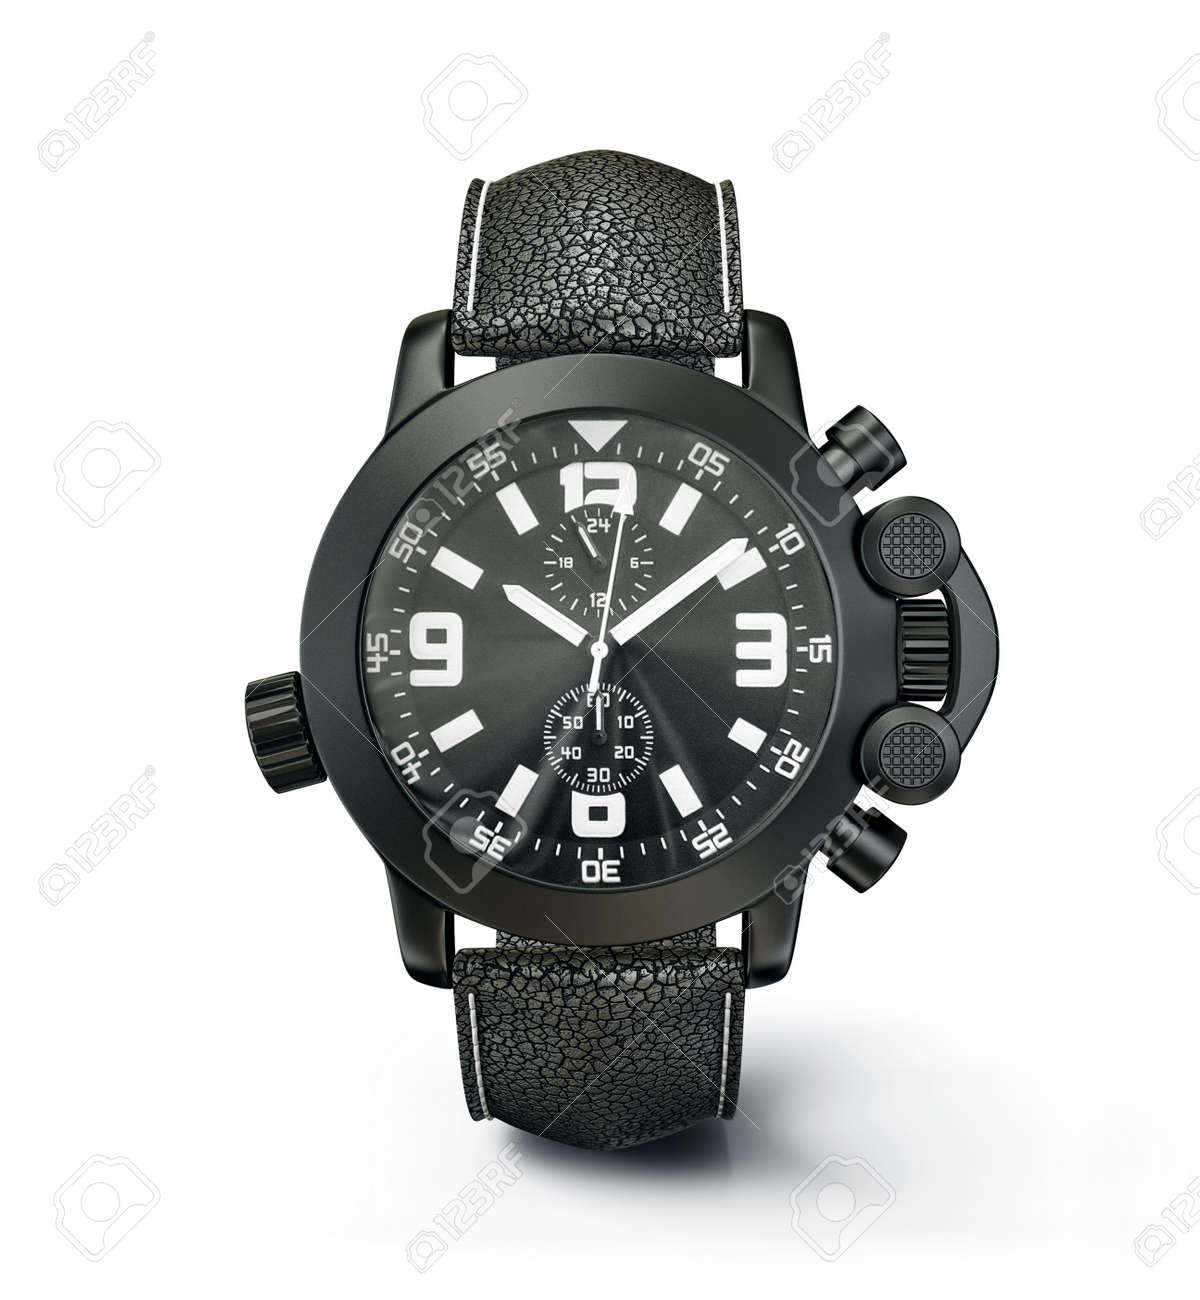 luxury watch isolated on a white background Stock Photo - 15824164